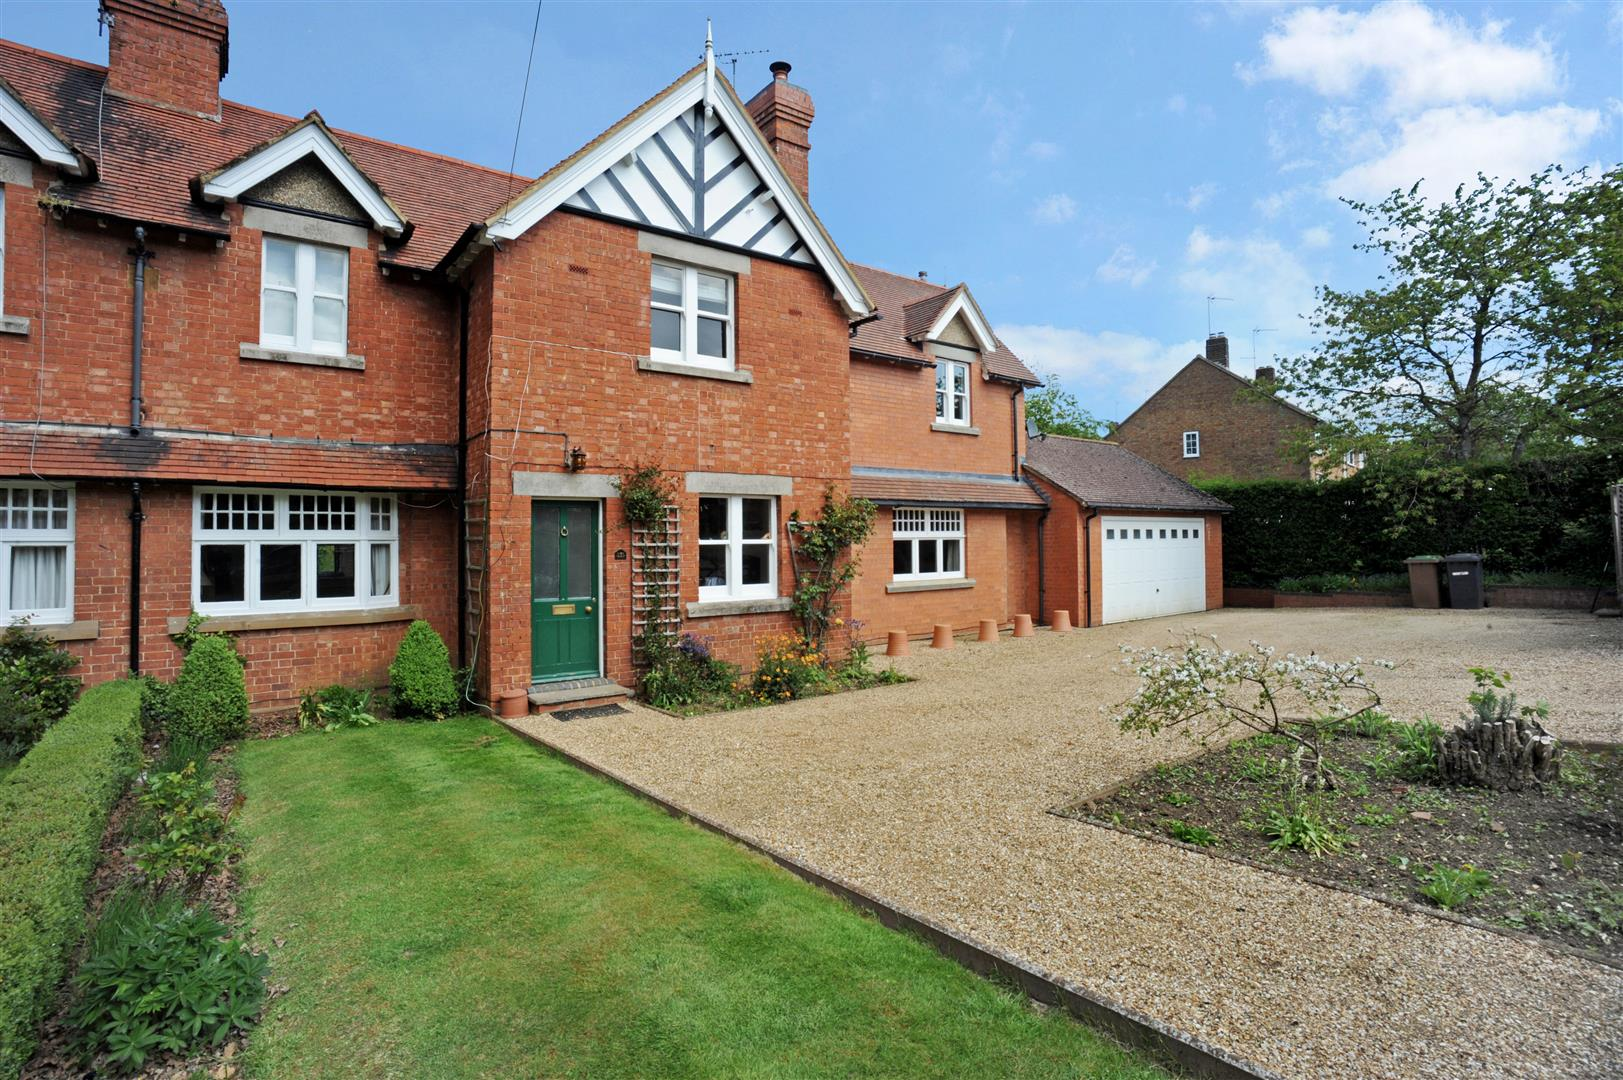 Property For Sale In Northampton Nn